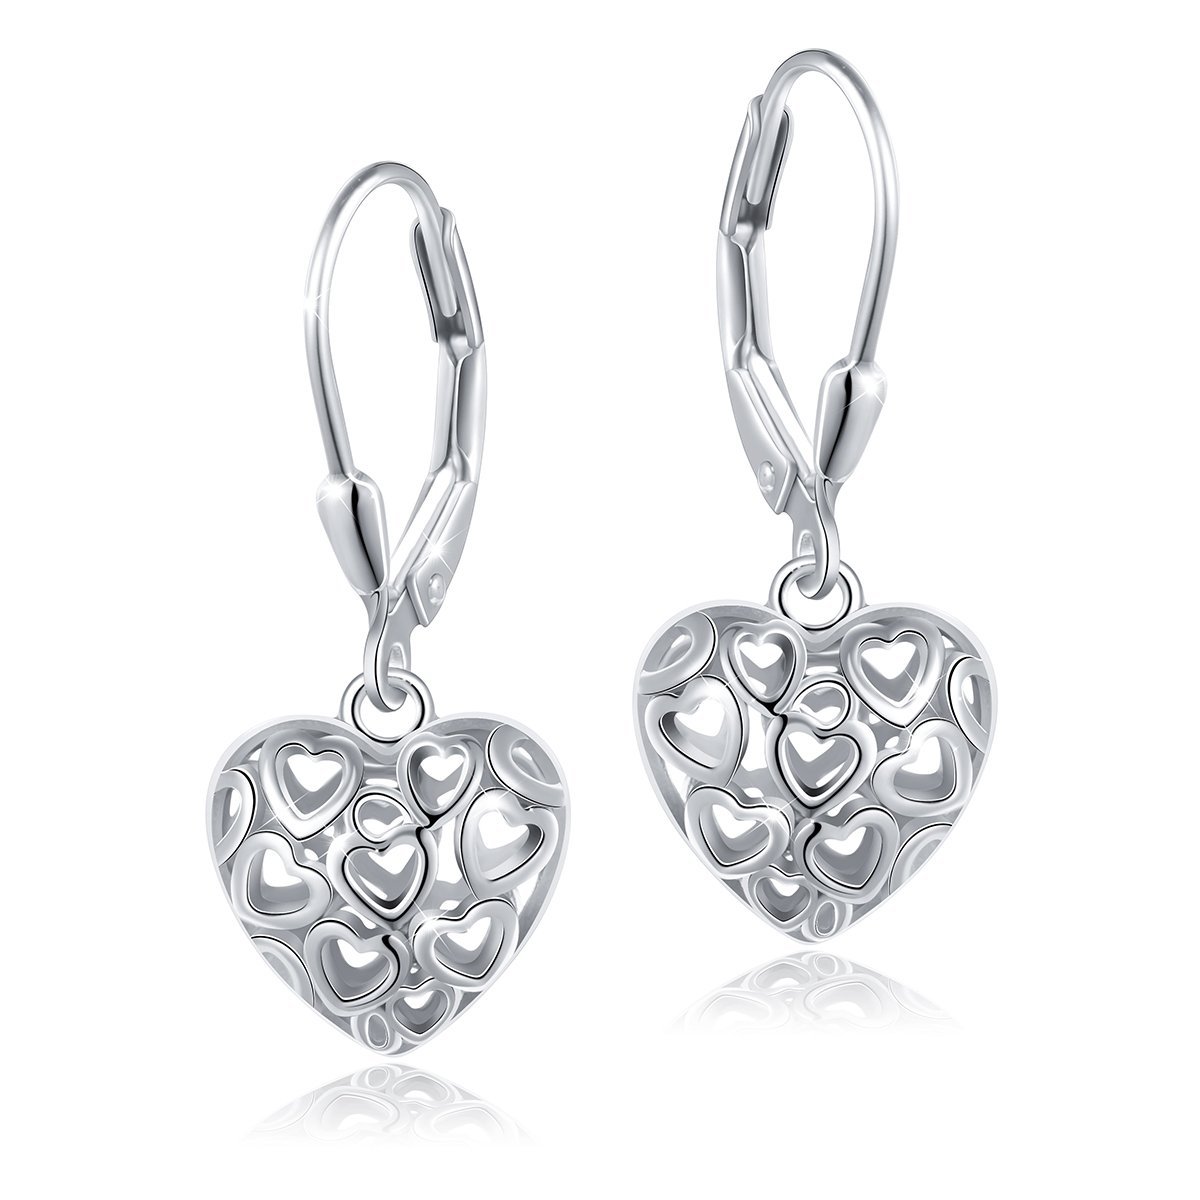 SILVER MOUNTAIN S925 Sterling Silver Heart Dangle Drop Leverback Earrings for Women Girl Mother